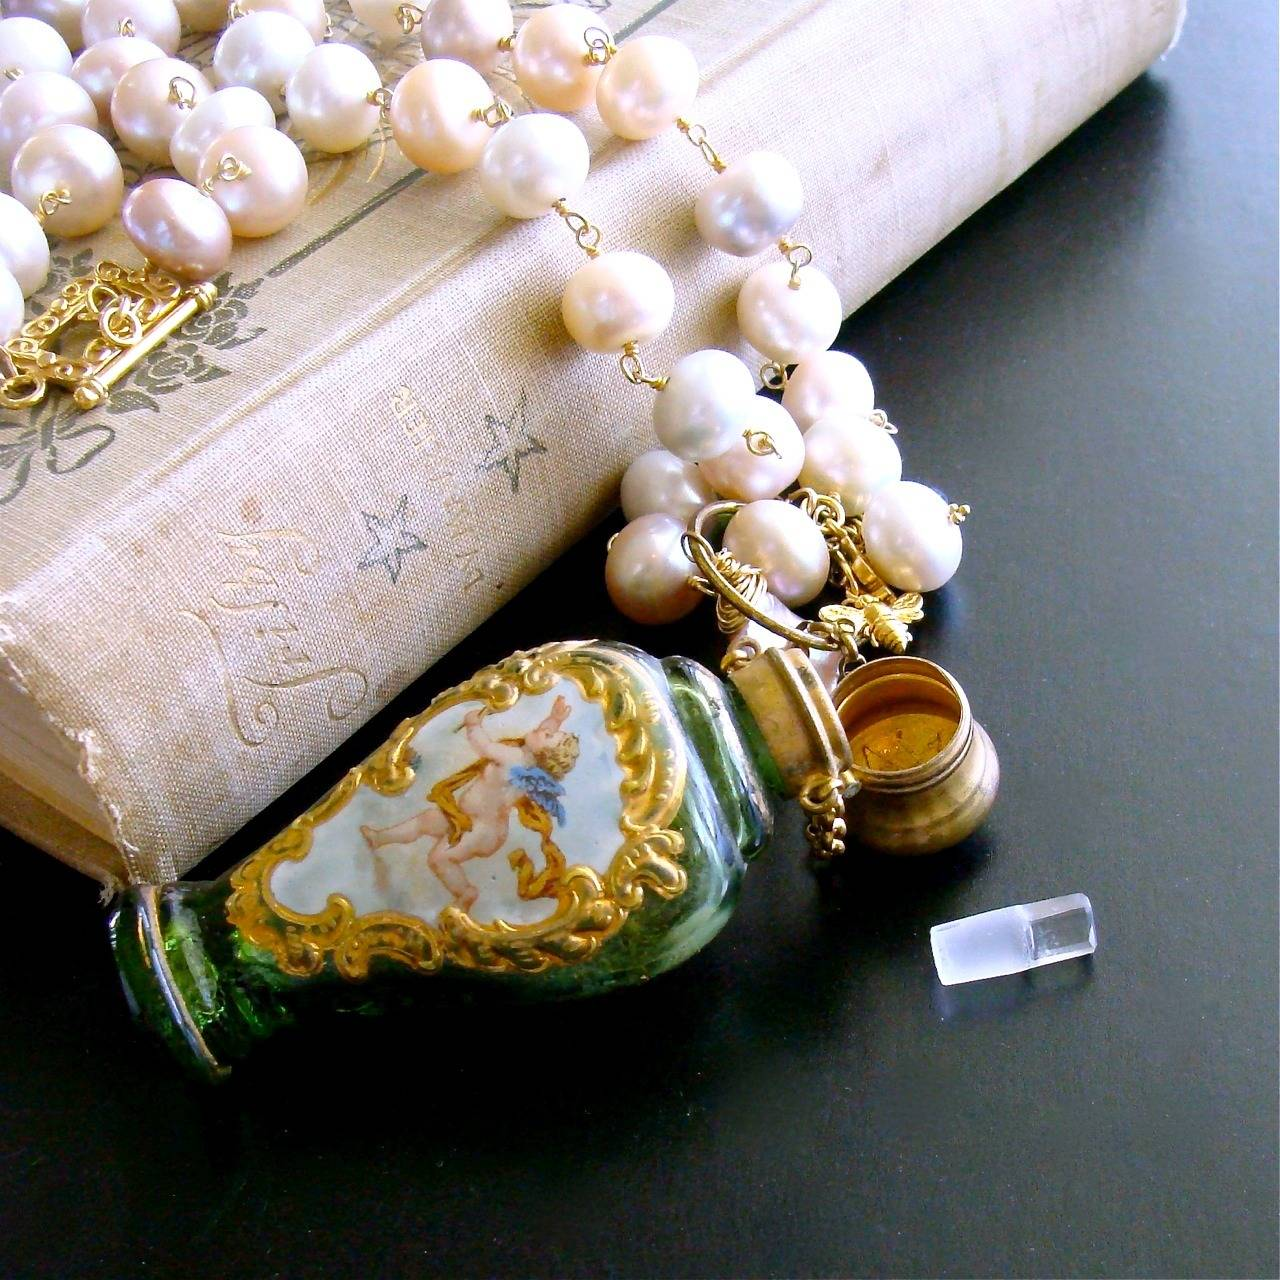 Cherub Chatelaine Scent Bottle Pink Baroque Pearls Necklace 8